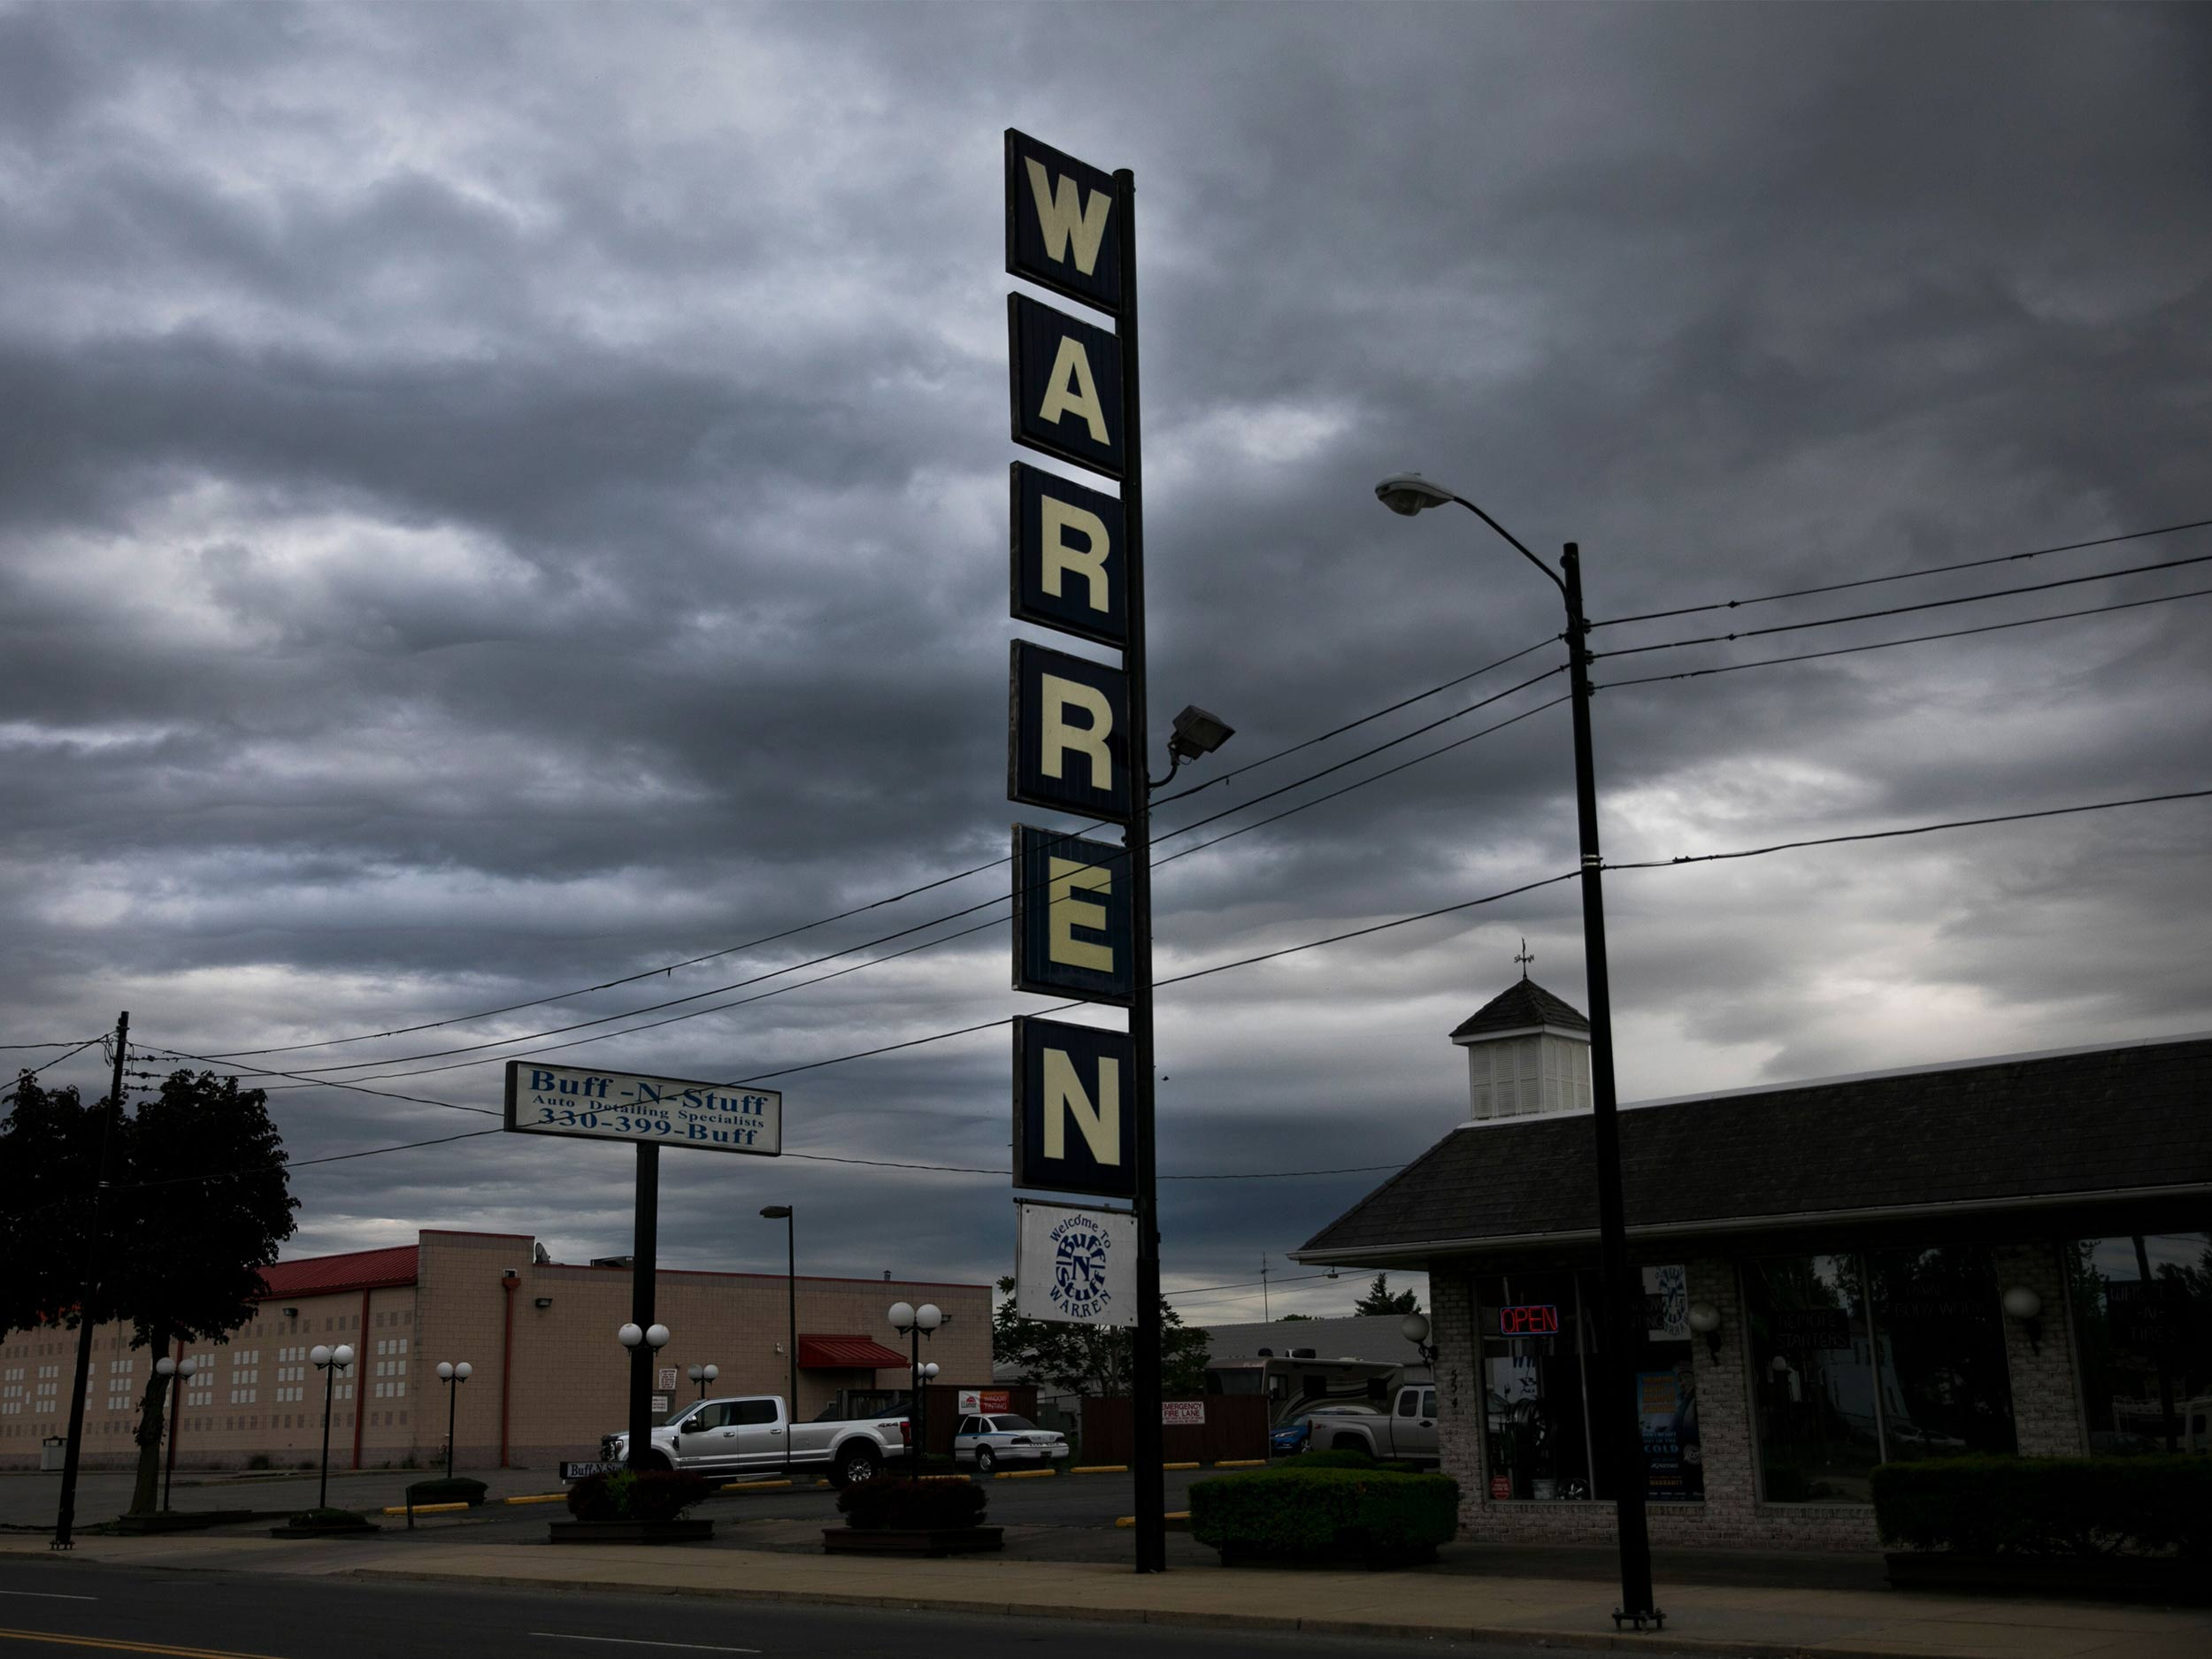 Portrait of Warren, Ohio—a microcosm of the Rust Belt struggle